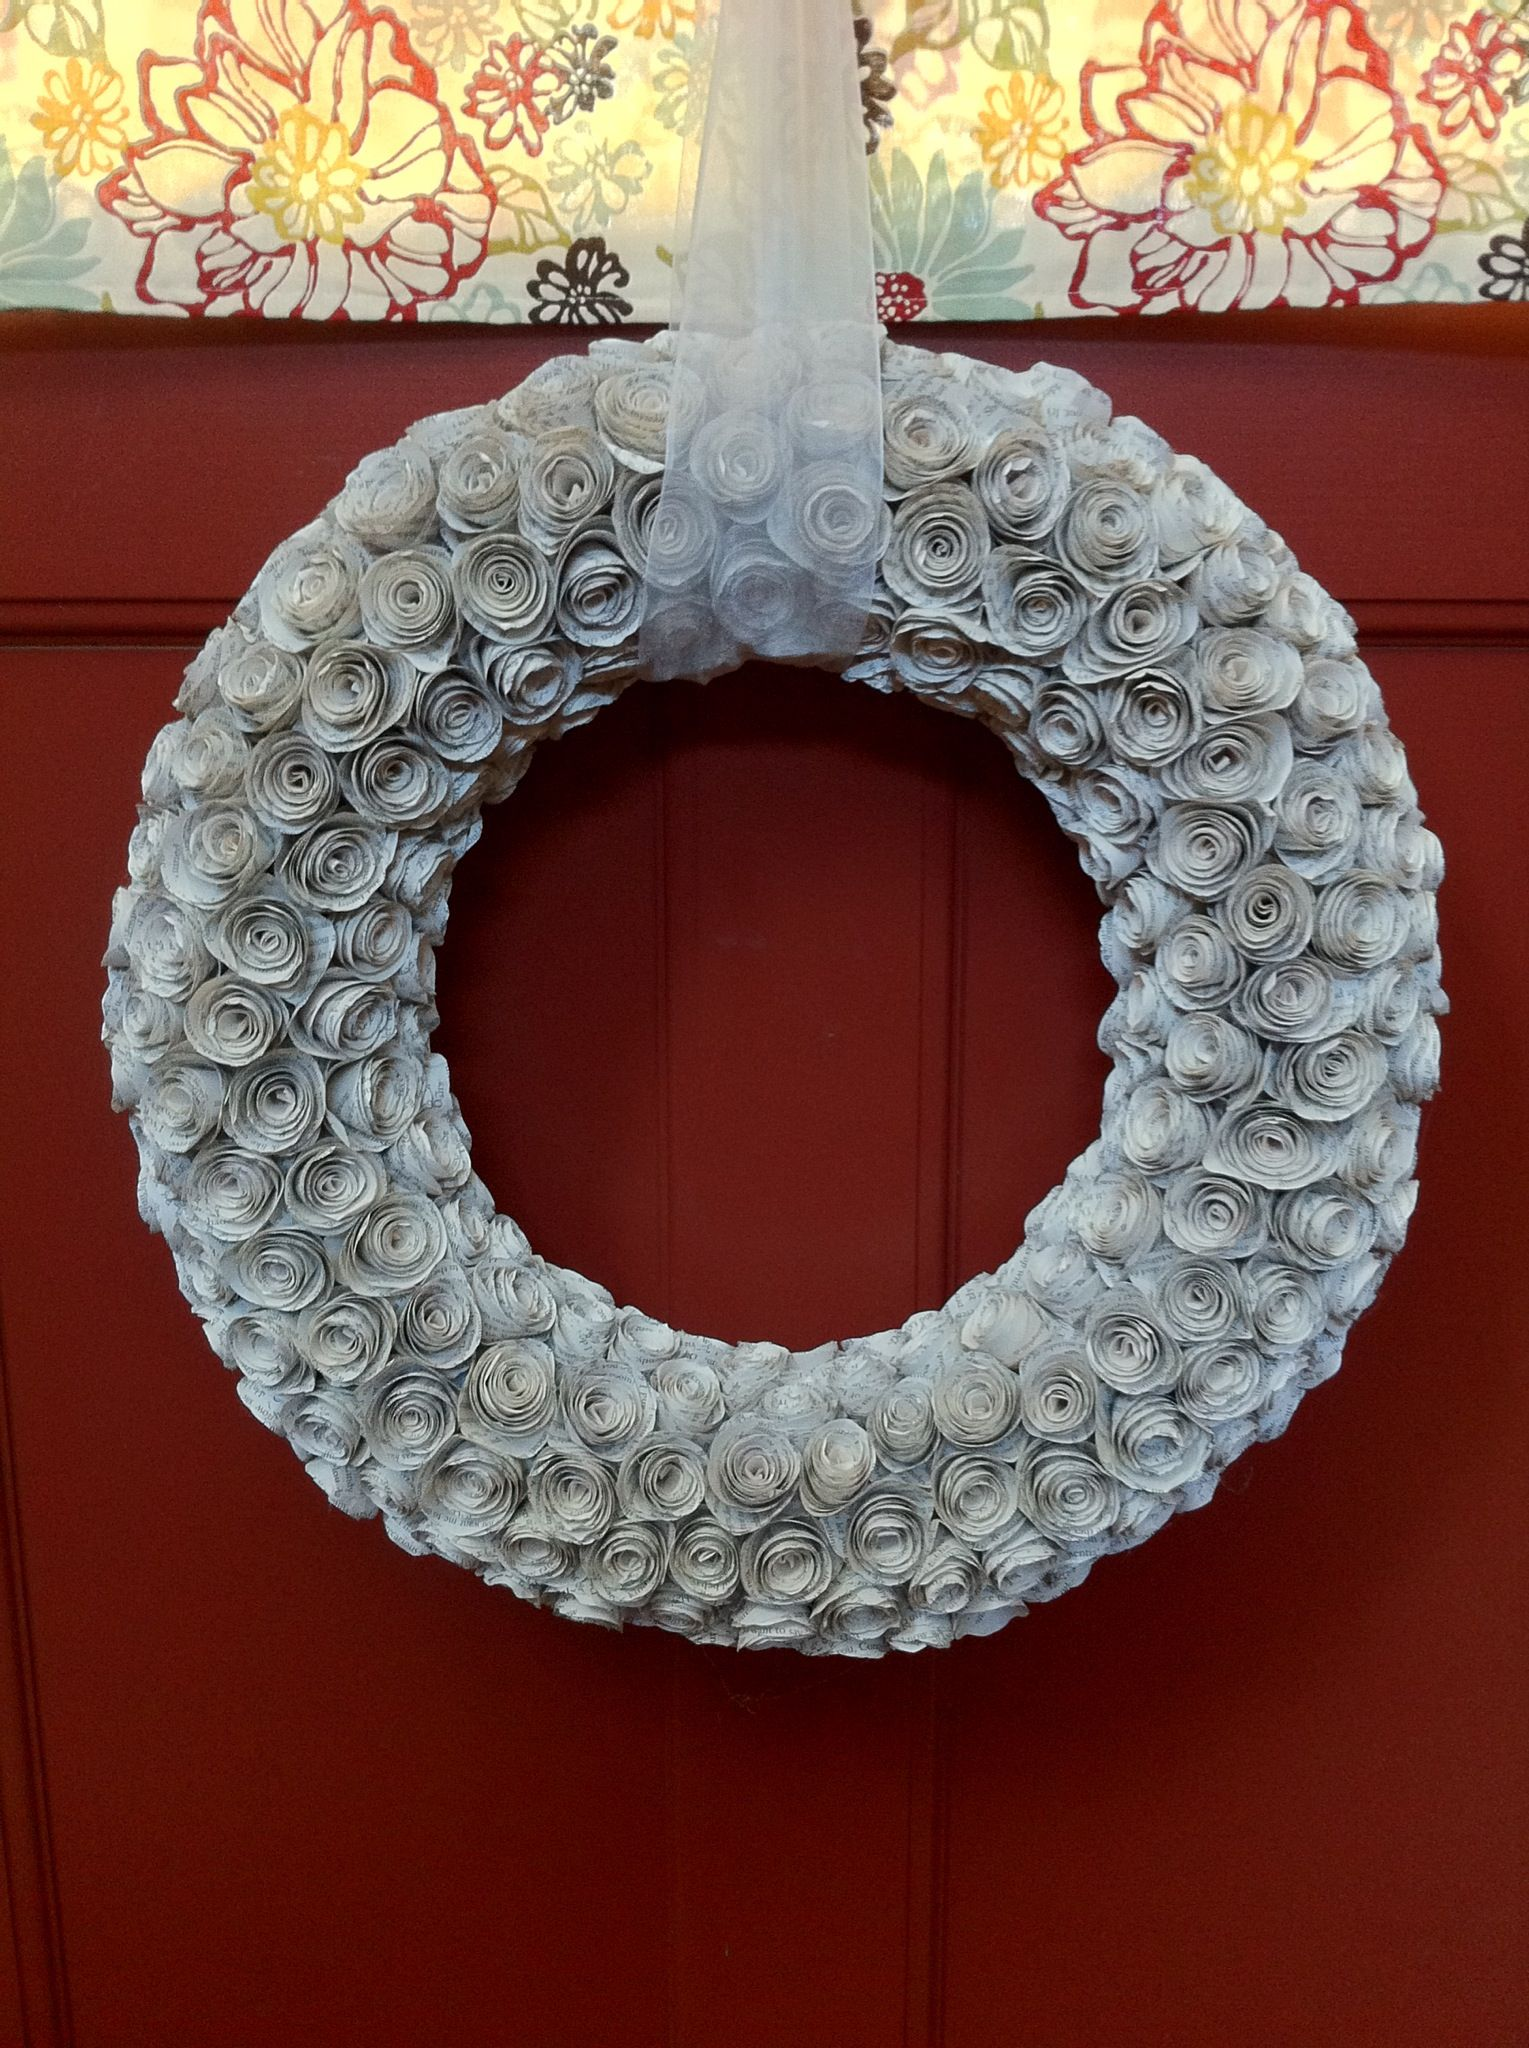 How to Make a Paper Rose Wreath Recipe (With images